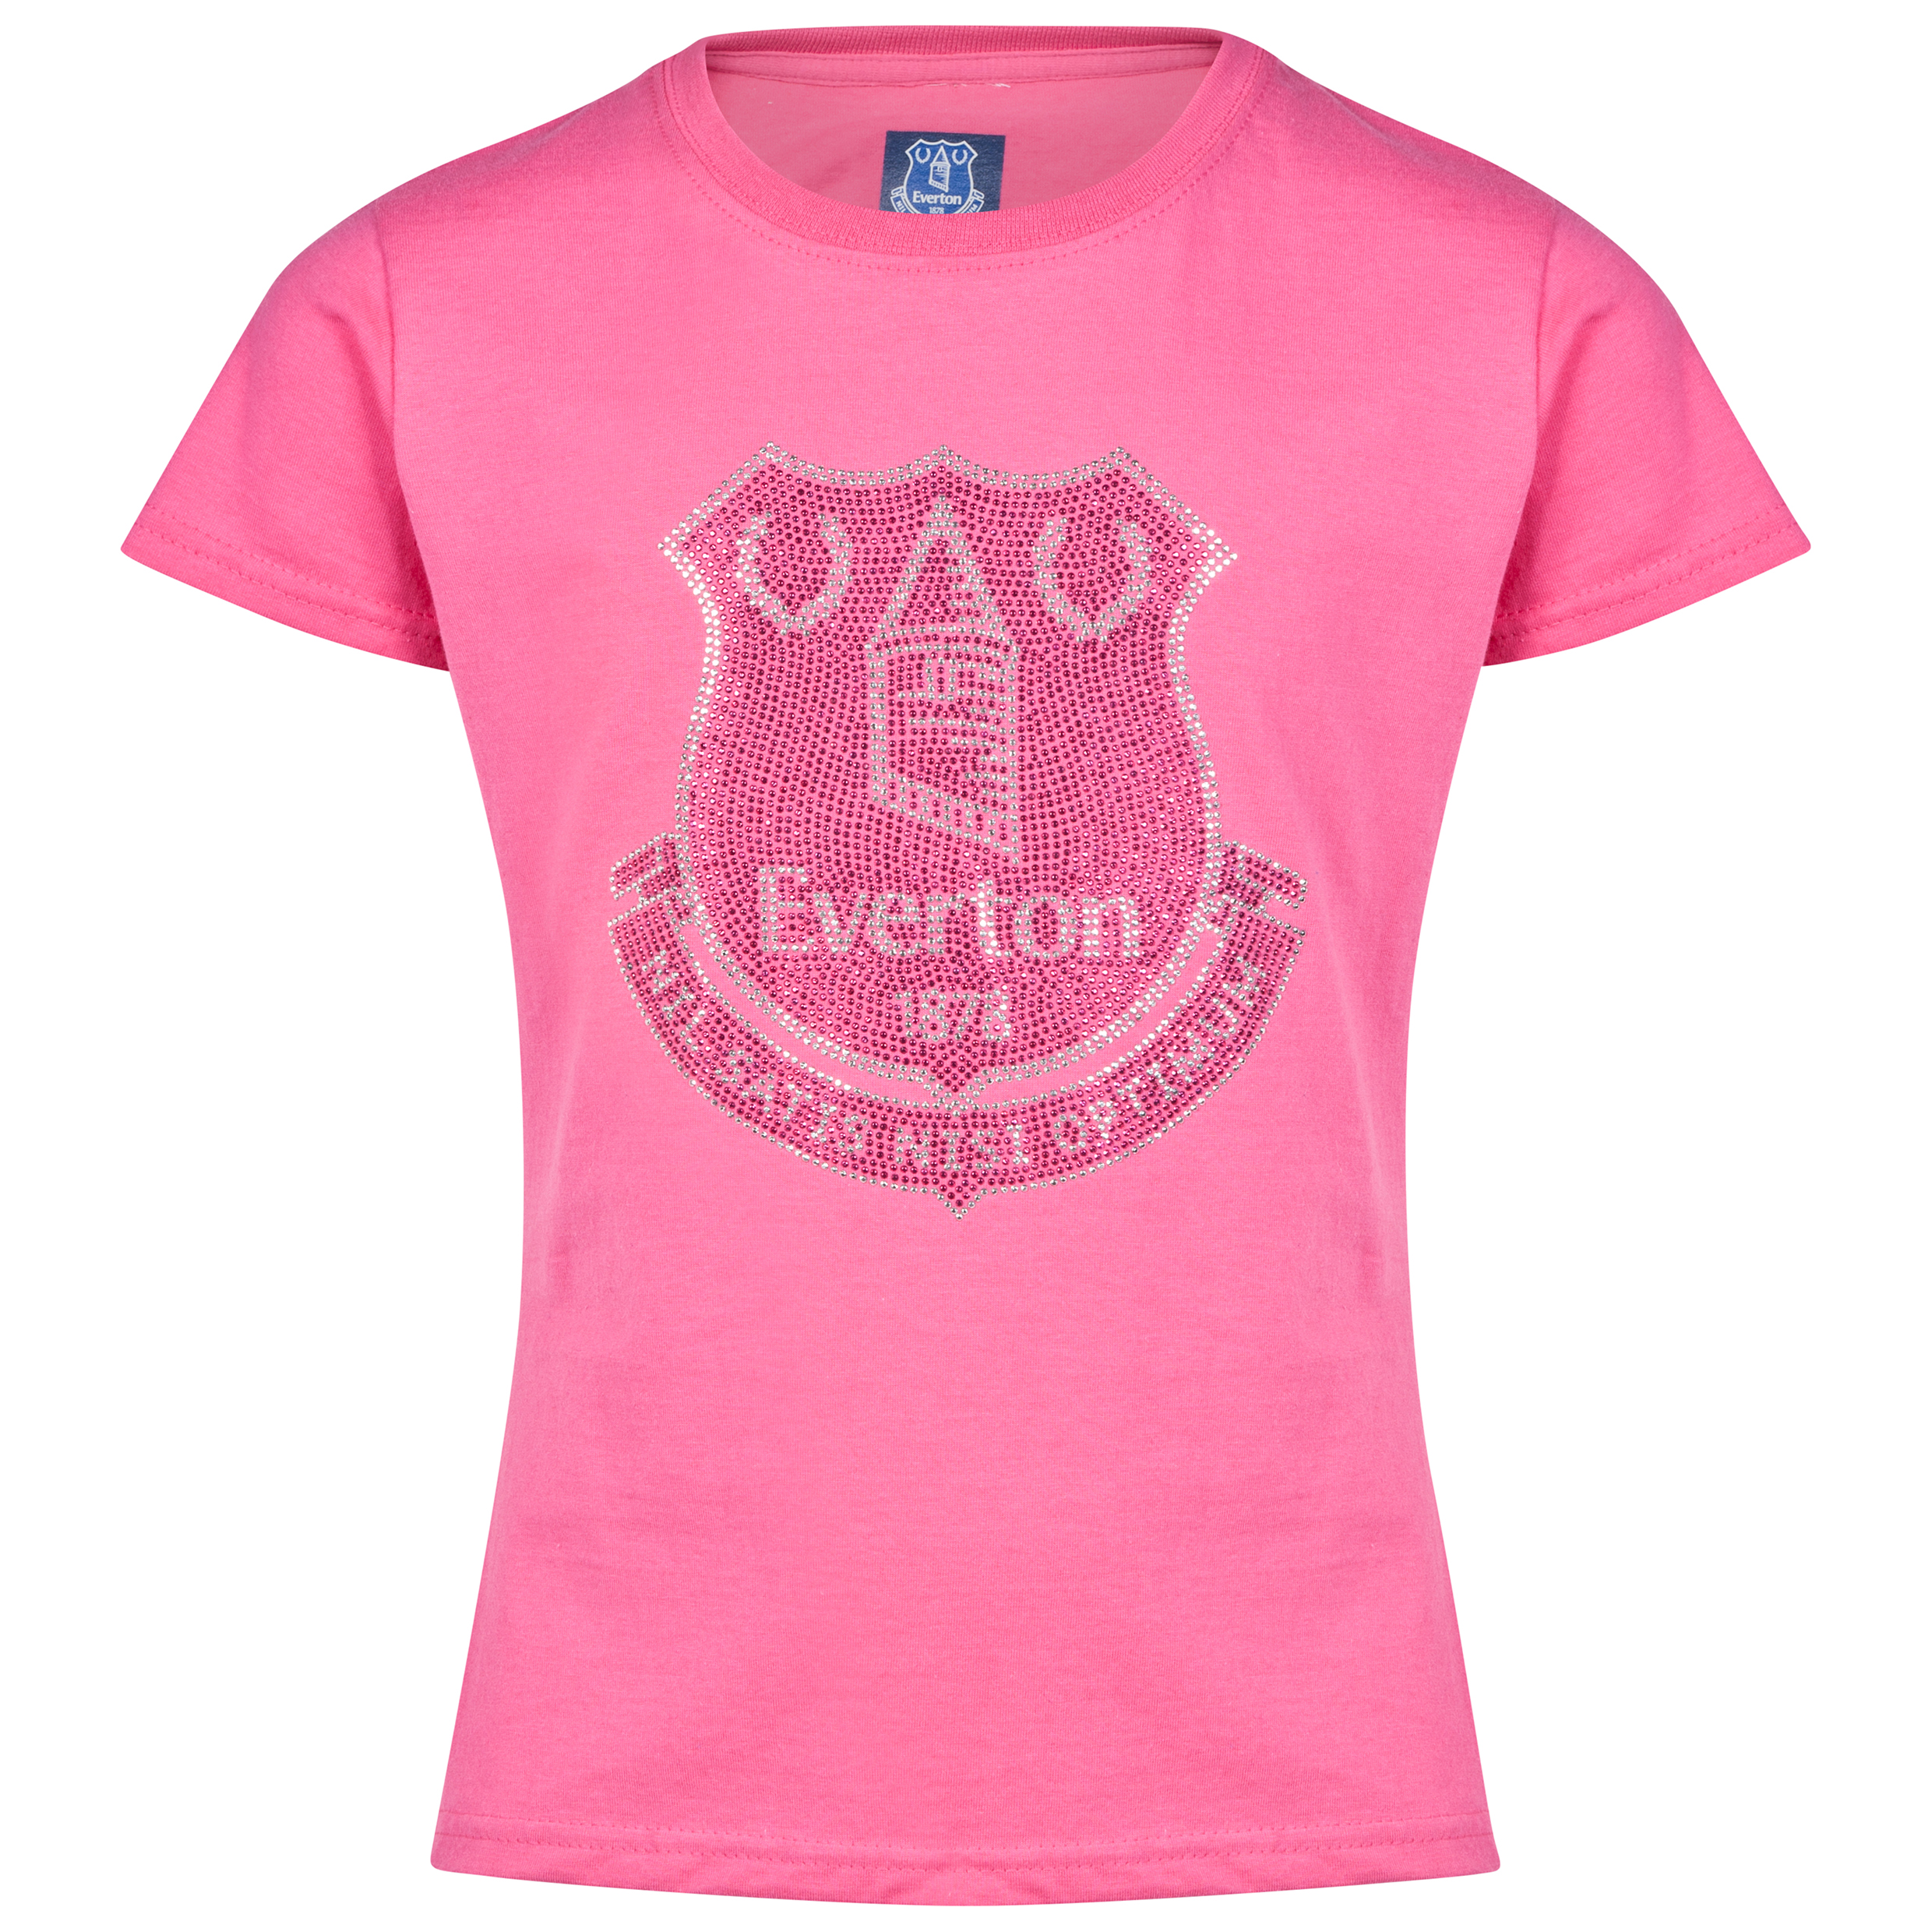 Everton Rhinestone-T-Shirt- Pink - Girls